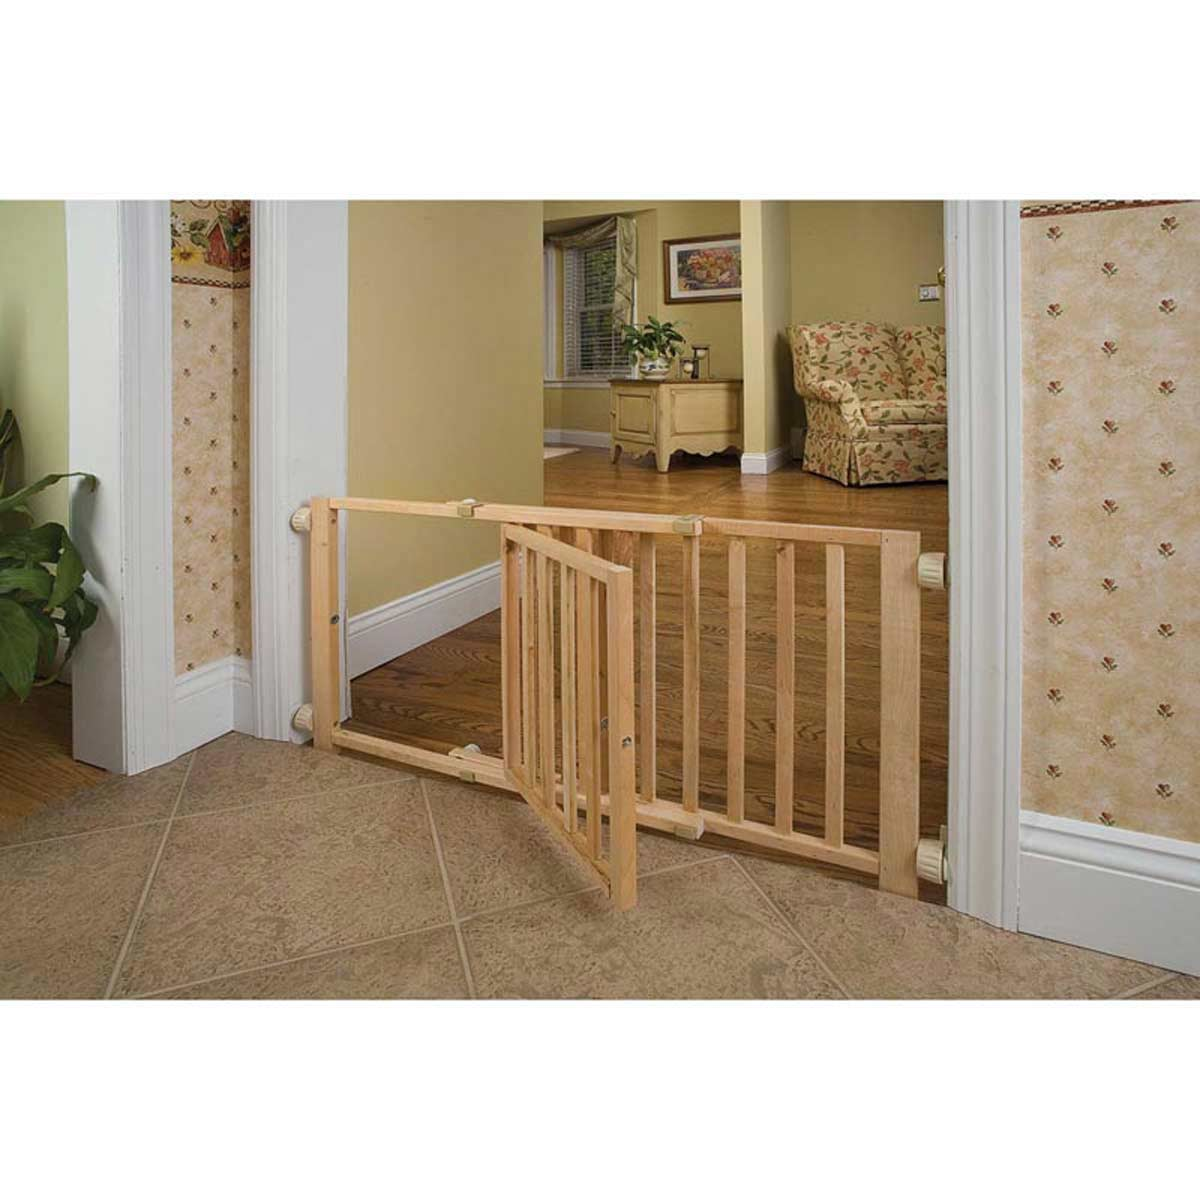 Four Paws Walk-Over Wood Safety Gate with Door 30-44 inches Wide by 18 inches Height